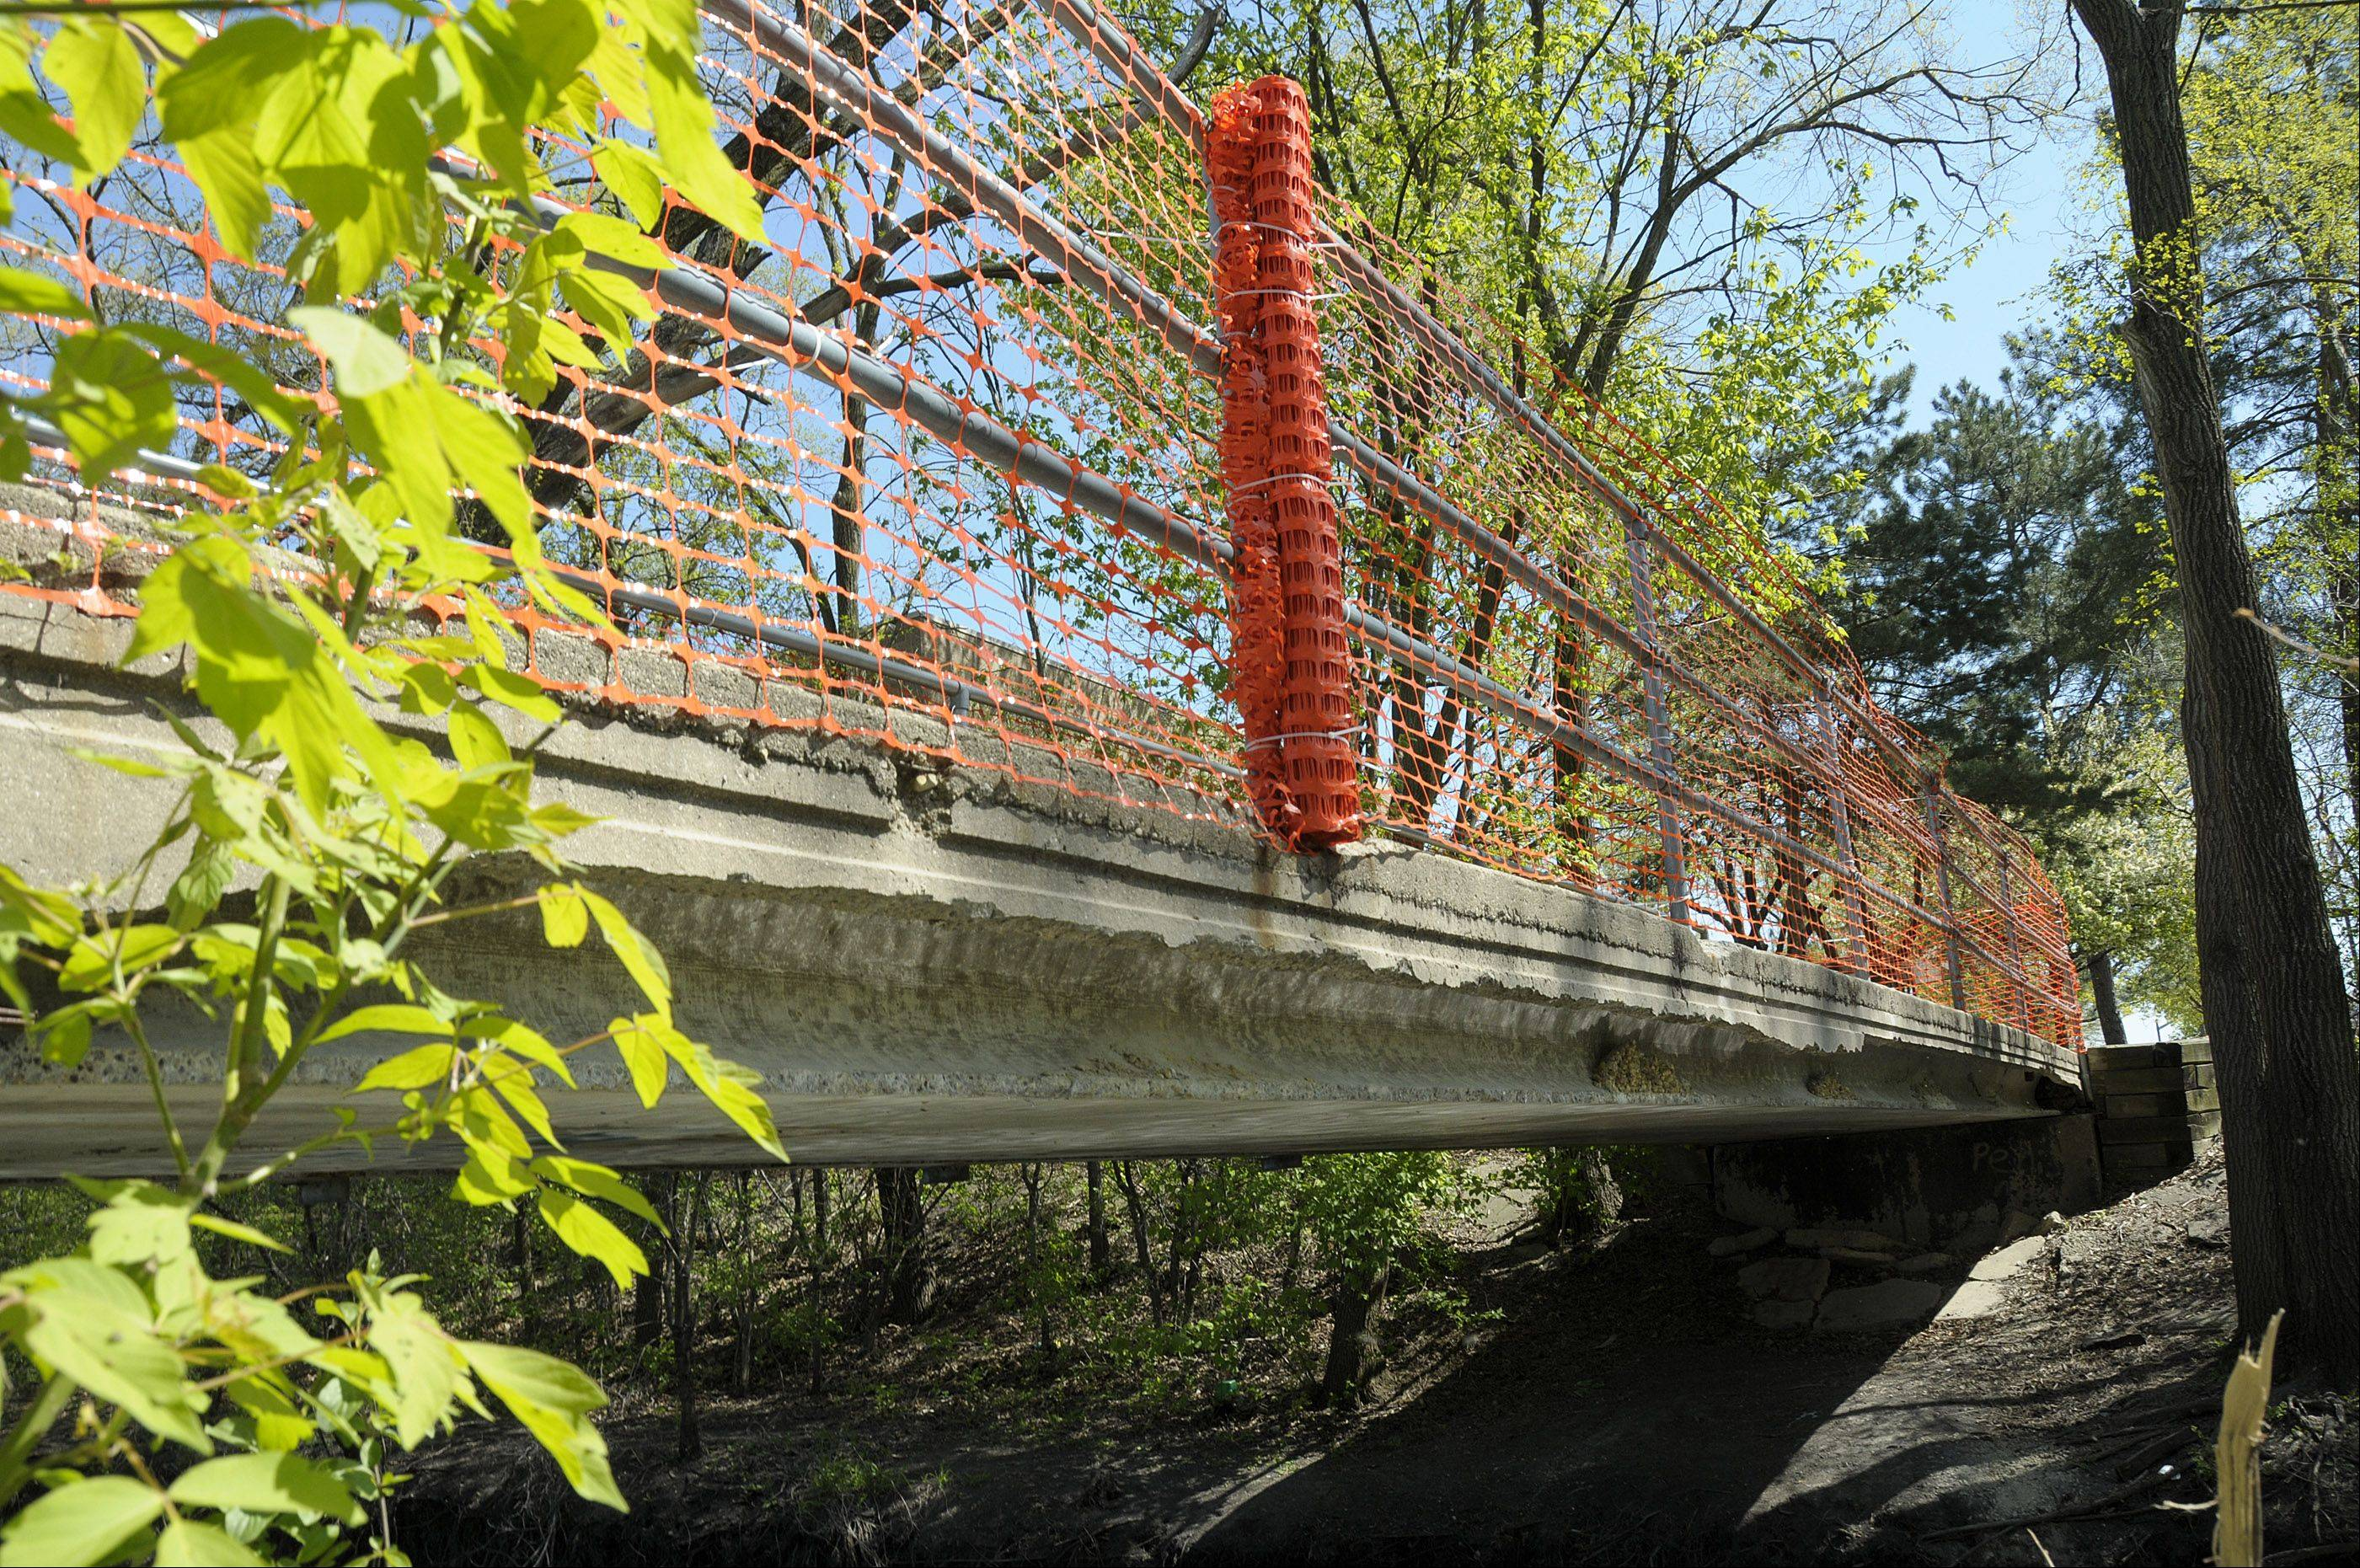 A bridge inspector's report suggests a pedestrian bridge that connects the Carol Stream Library with Armstrong Park be temporarily fixed or permanently replaced.